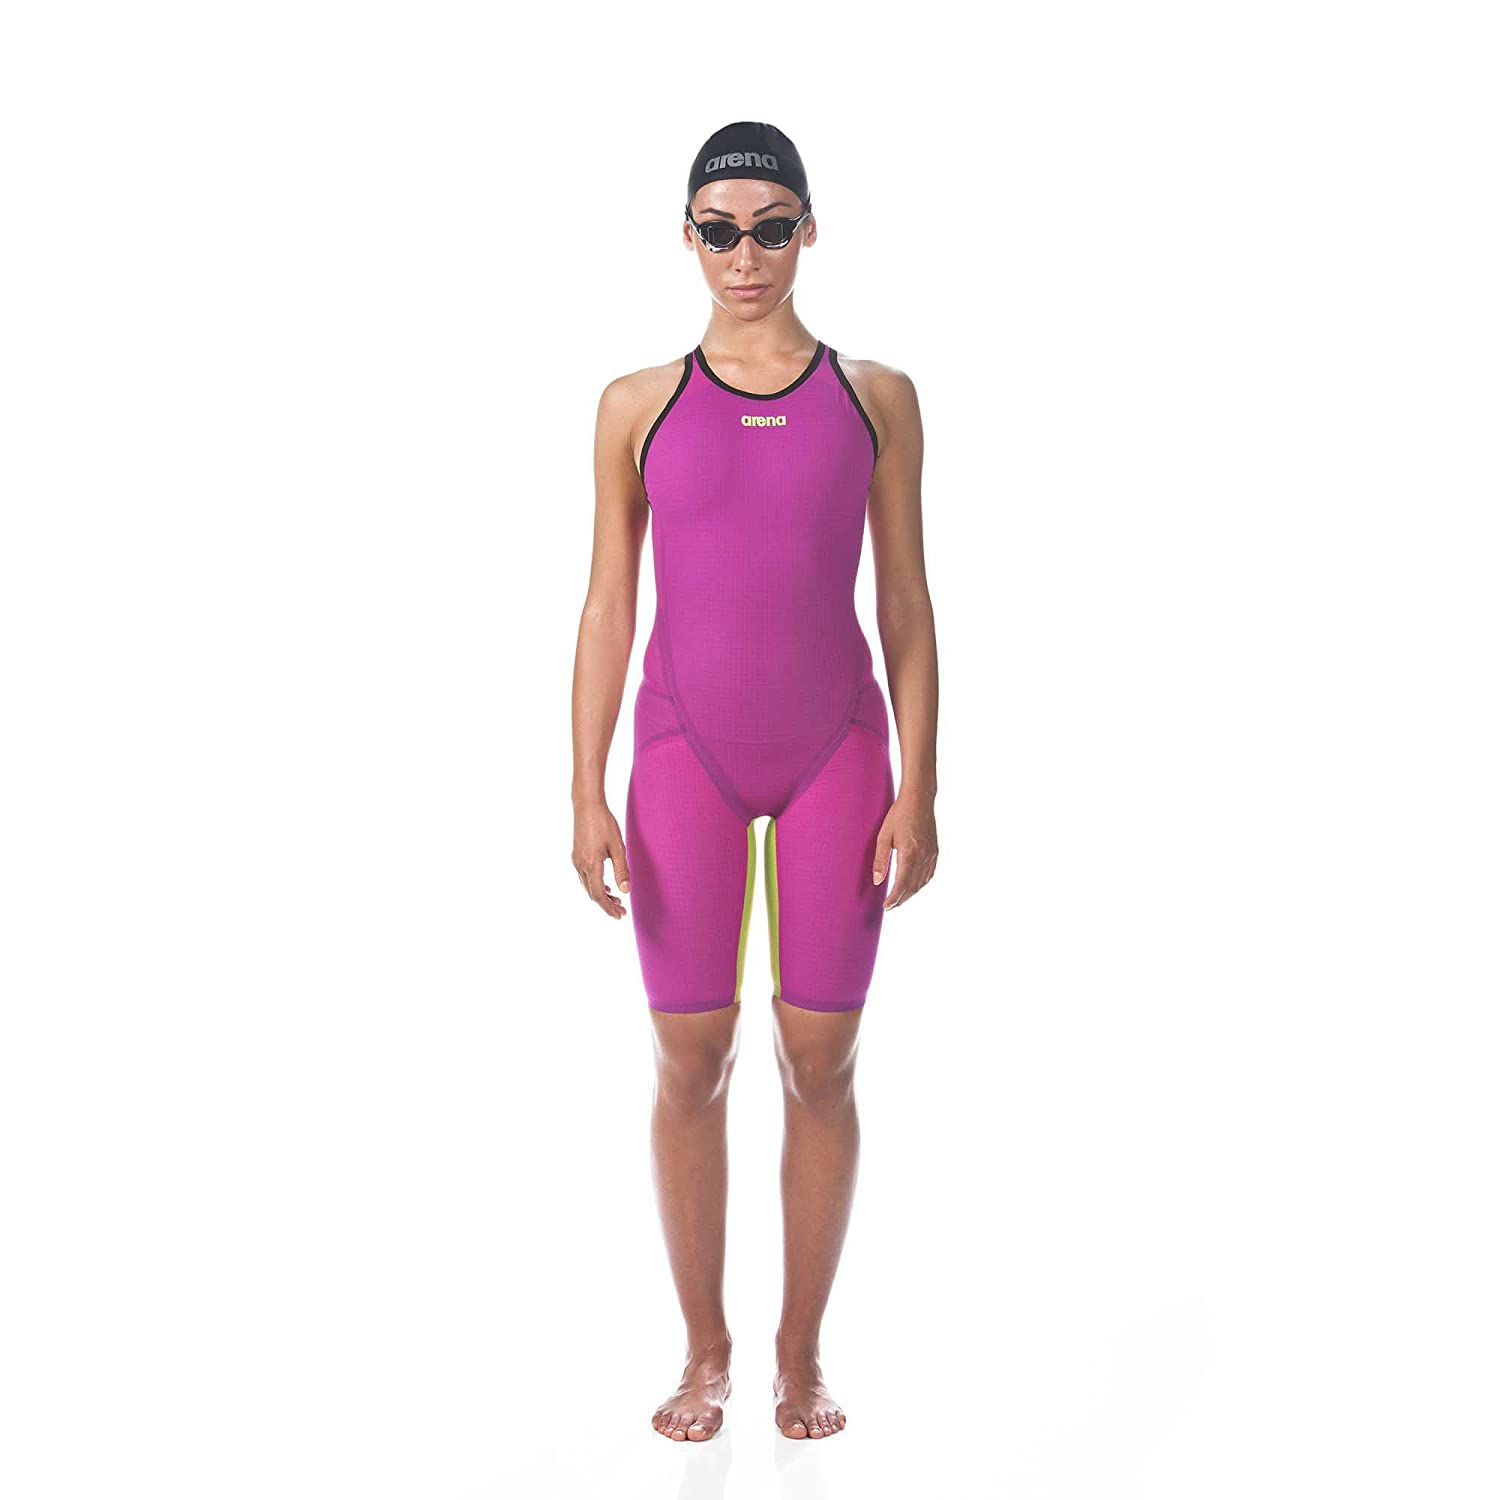 Image of Arena Women's Limited Edition Powerskin Carbon Flex VX Open Back Tech Suit Swimsuit, Fuchsia-Fluo Yellow - 30